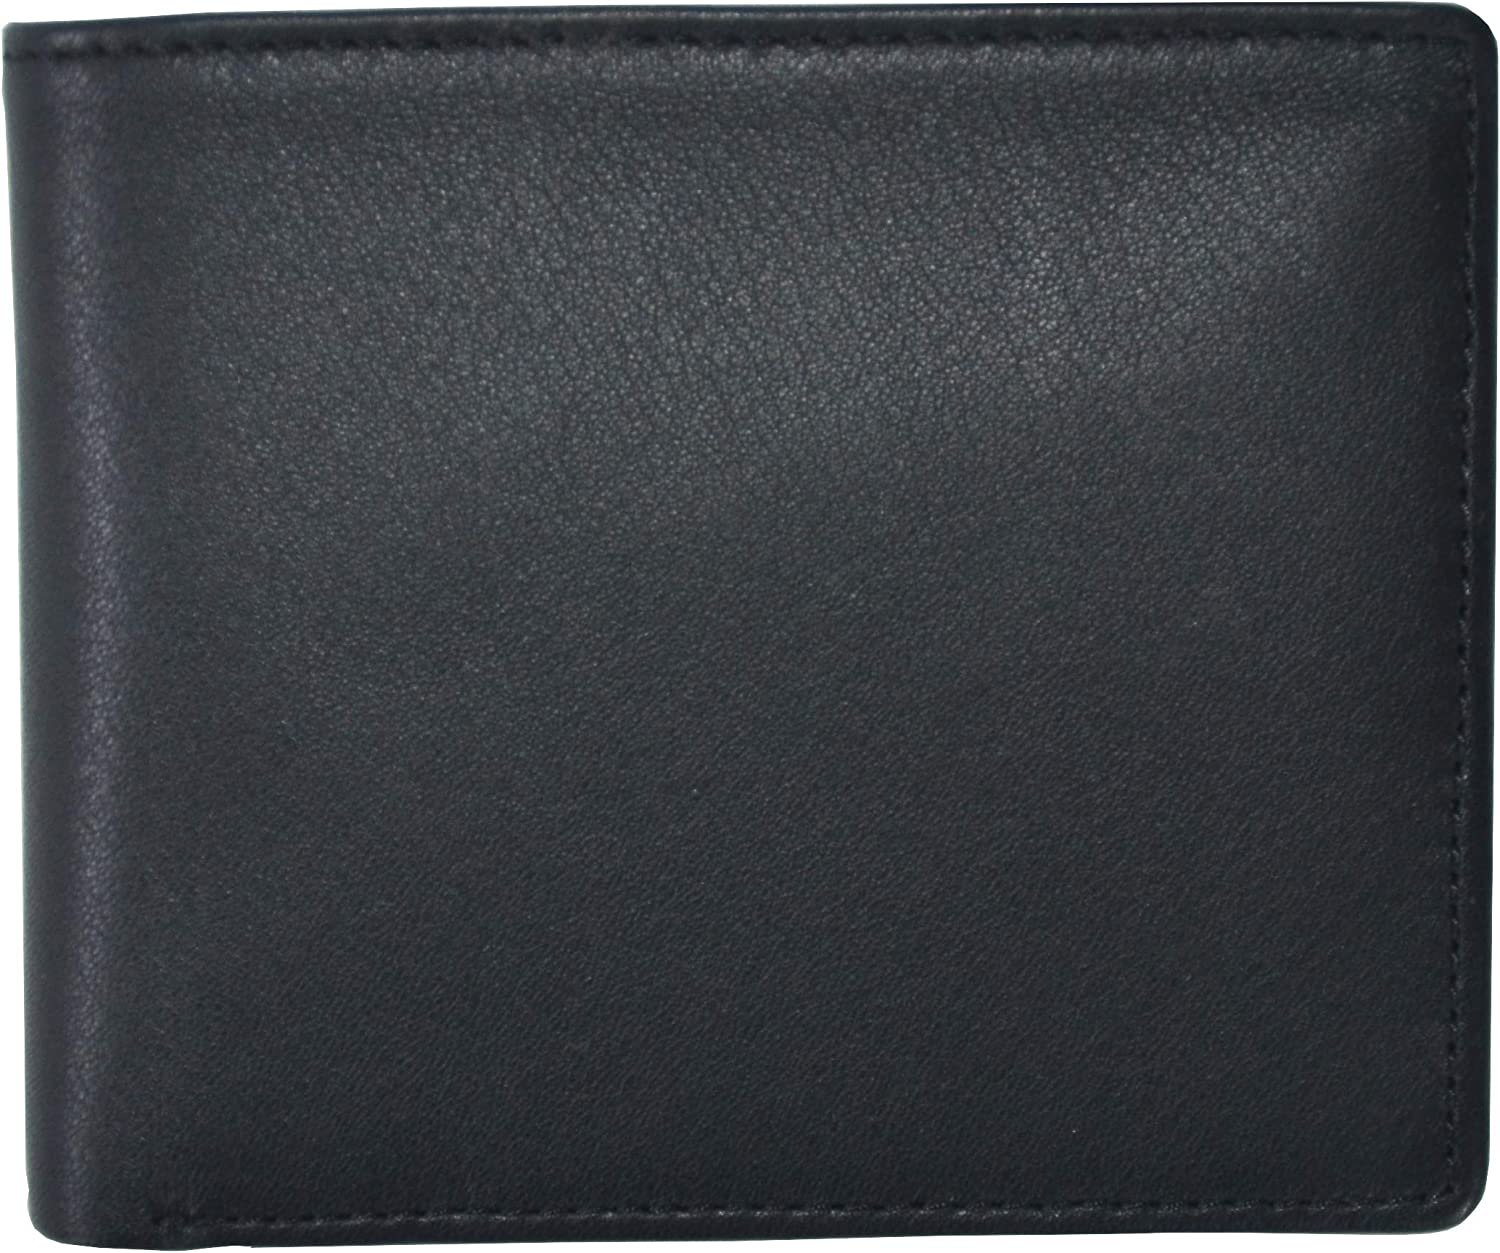 Black and Red Royce Leather Mens RFID Blocking Bifold Wallet in Leather with Double Id Display